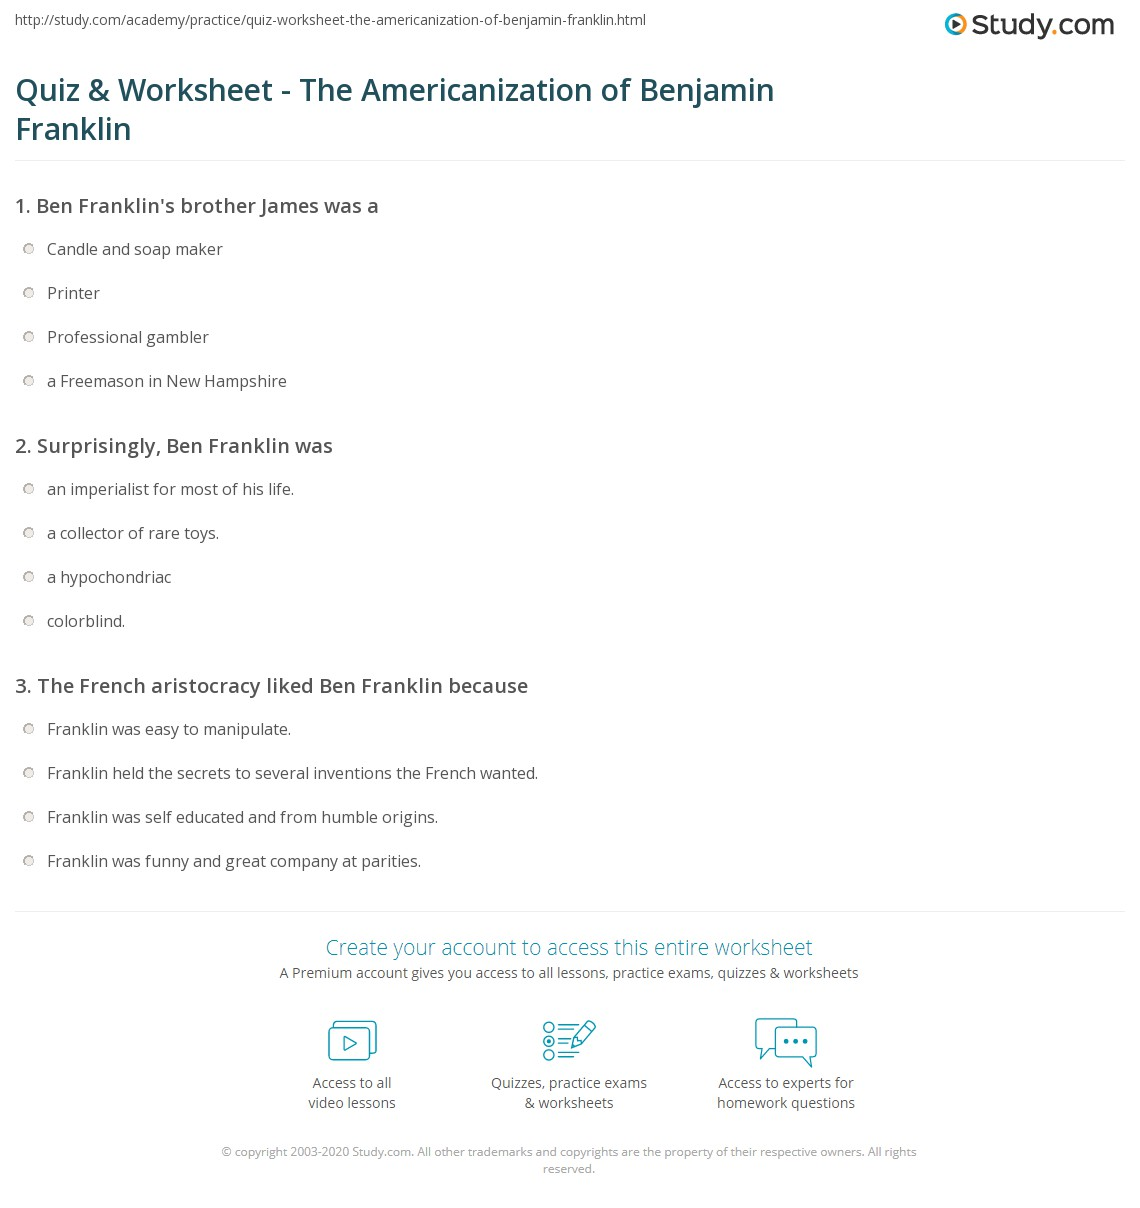 quiz worksheet the americanization of benjamin franklin print the americanization of benjamin franklin summary analysis worksheet